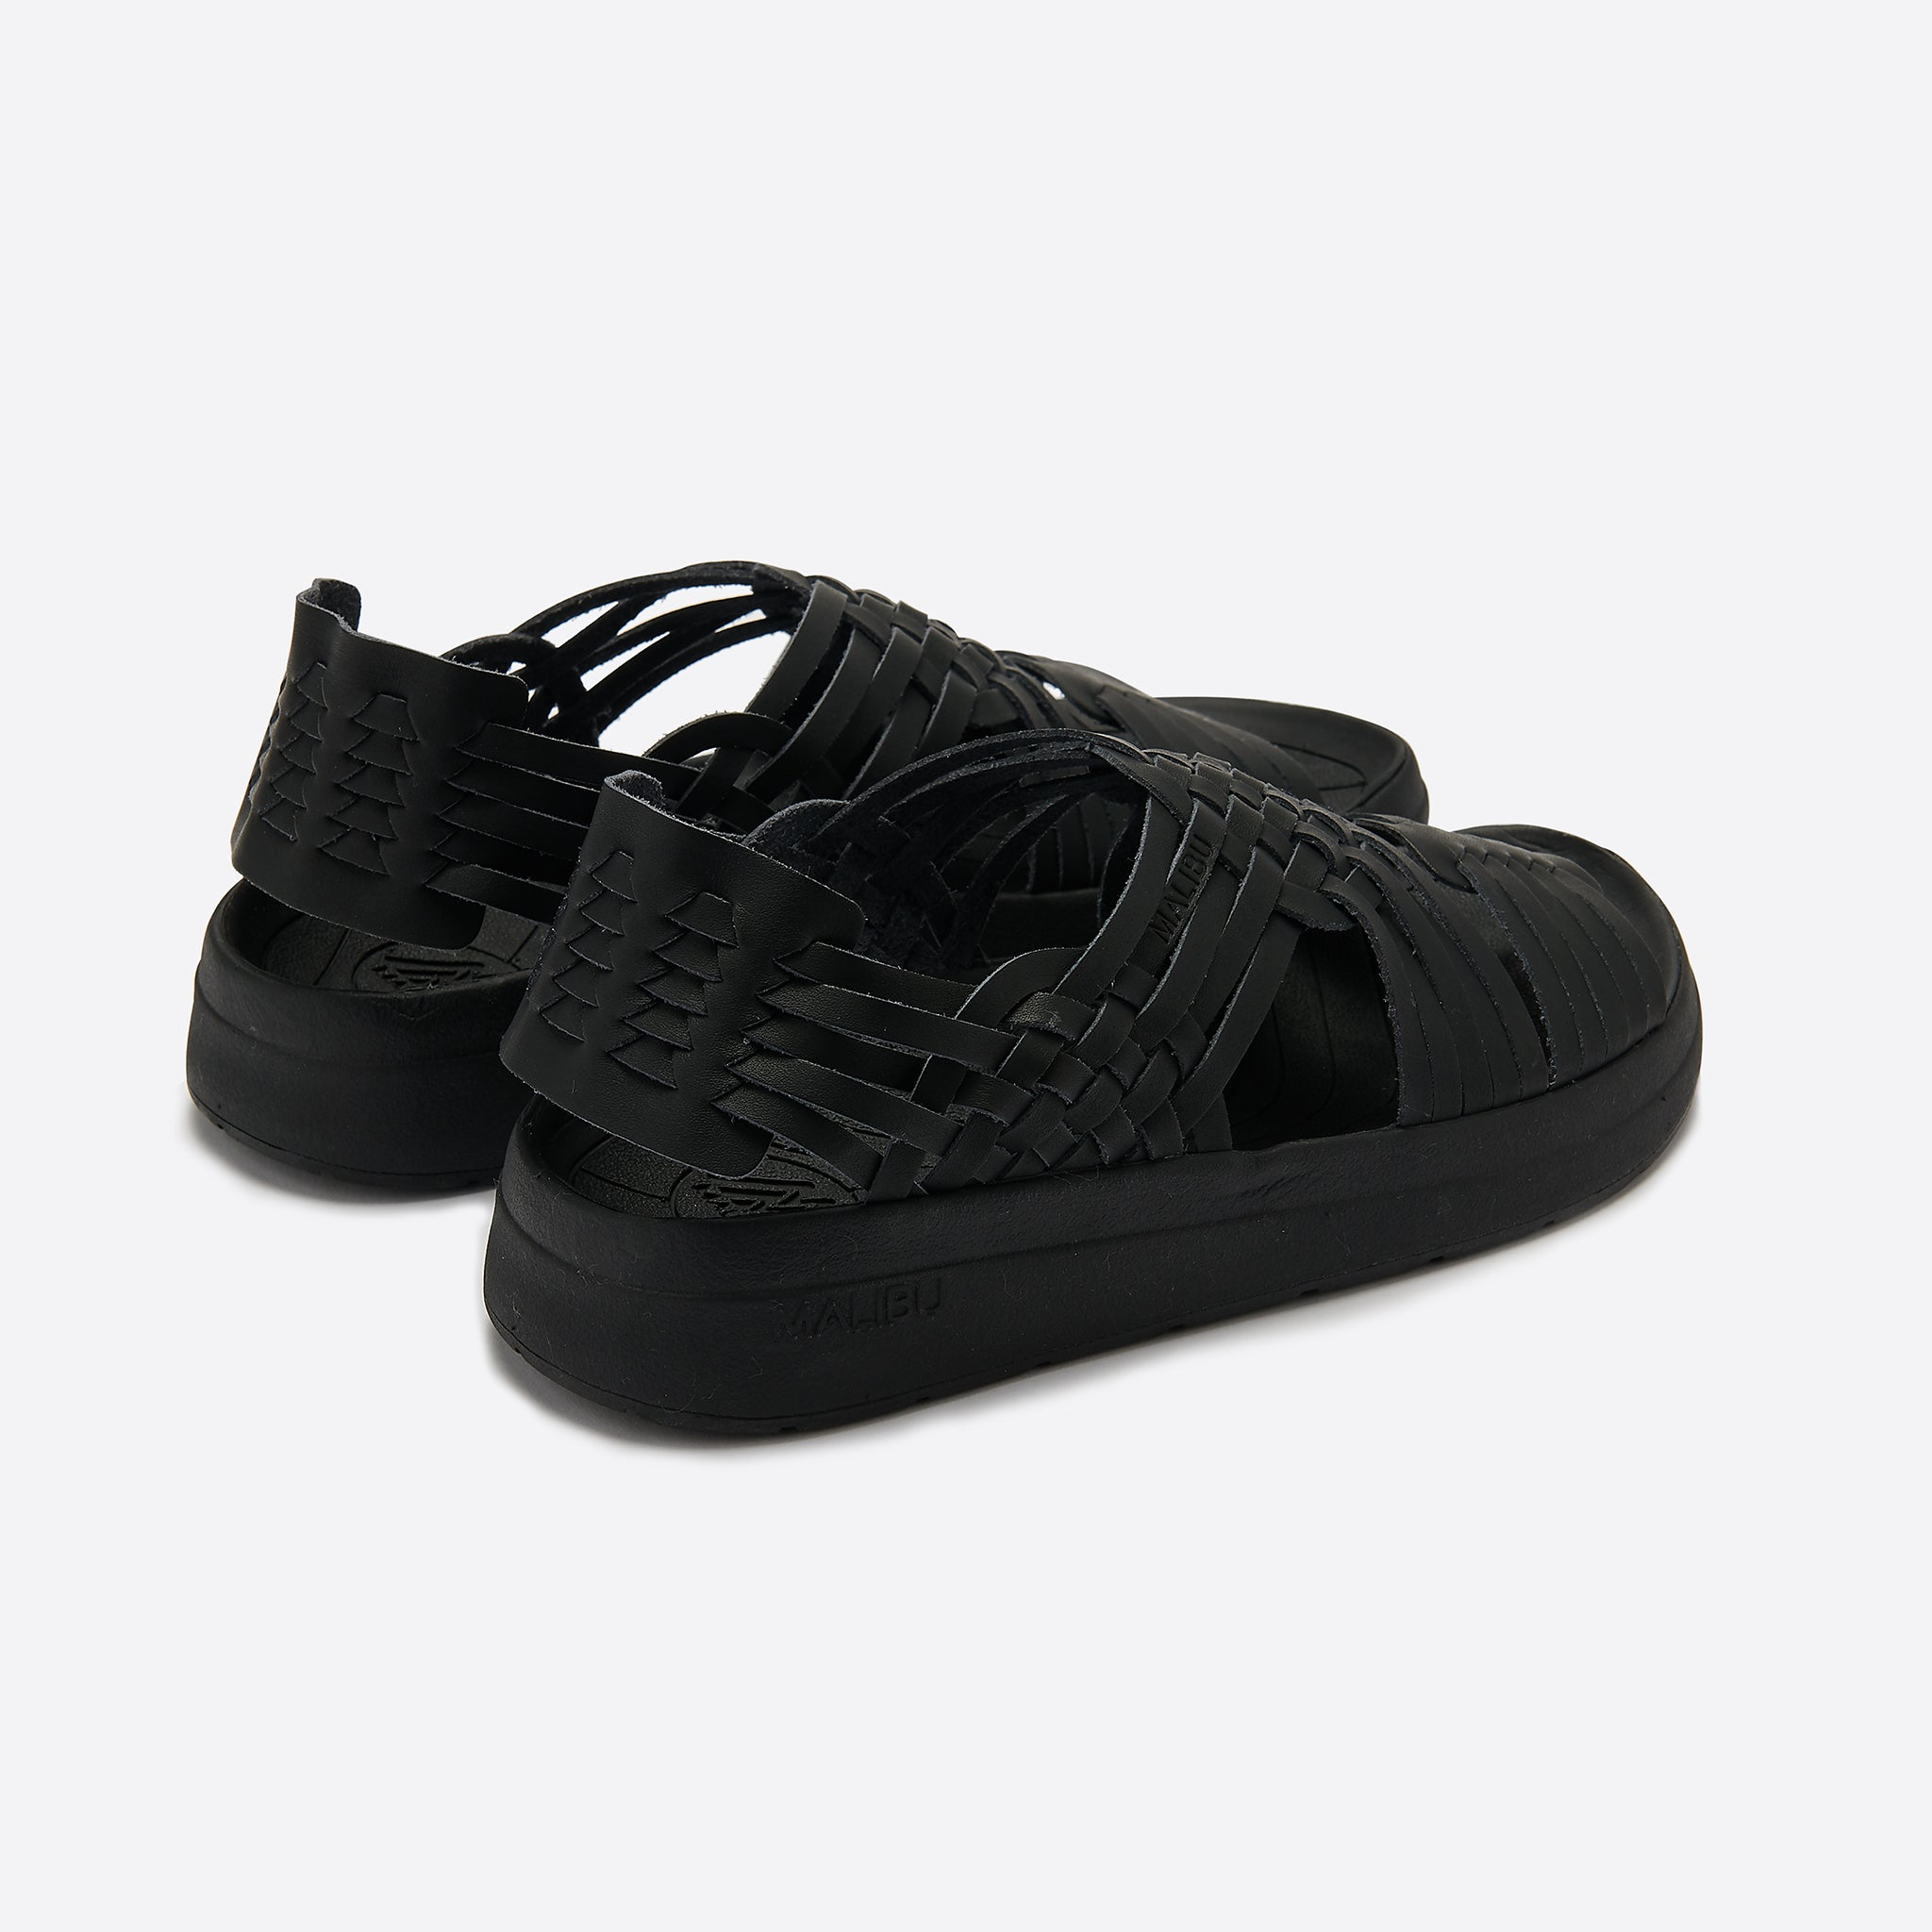 Malibu Sandals Canyon Classic in Black Vegan Leather